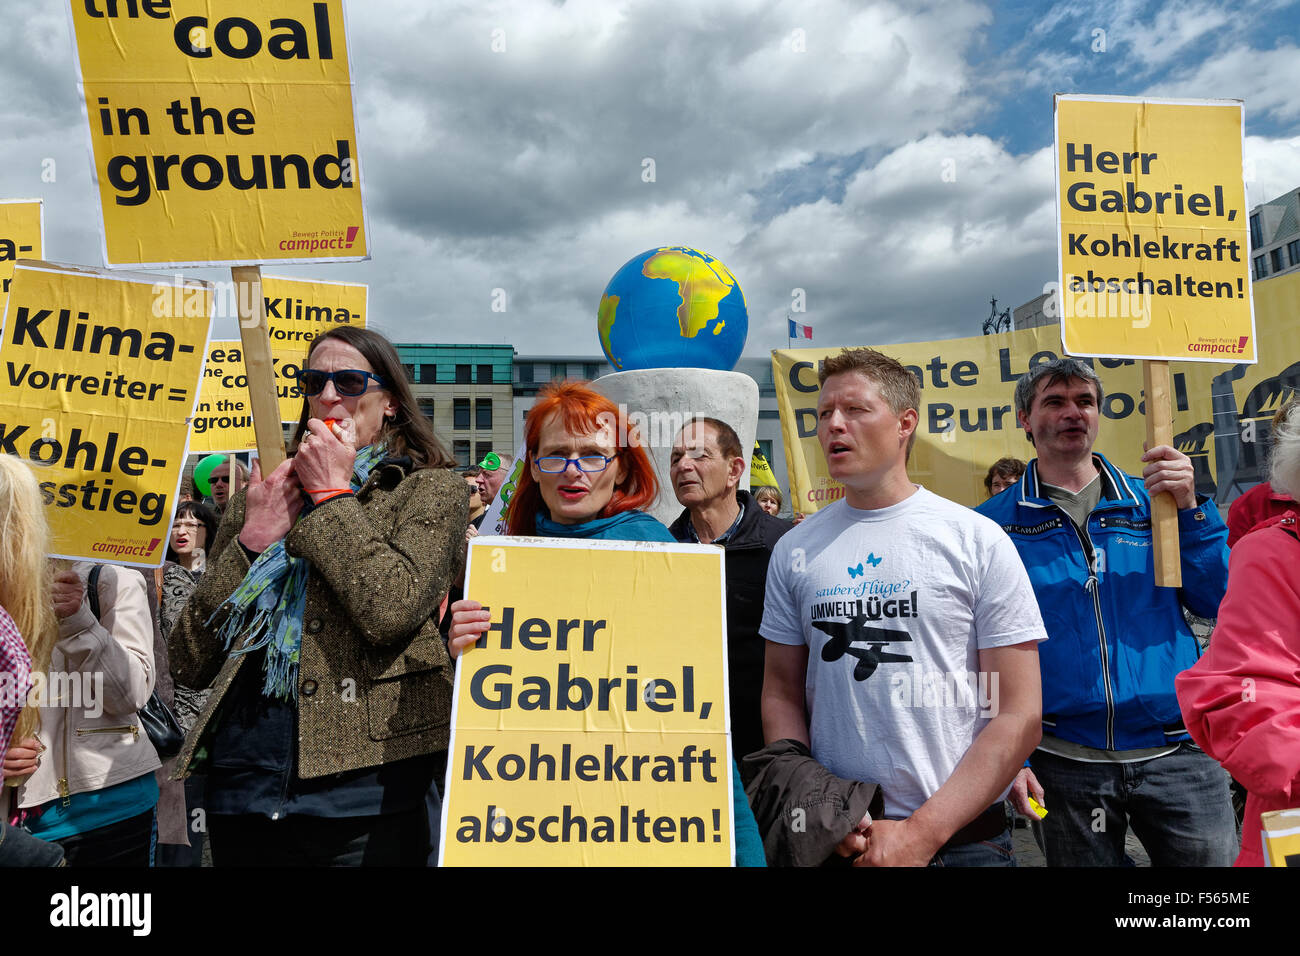 19.05.2015, Berlin, Berlin, Germany - Protest demonstration of Aktionsbuendnisses Campact against the lignite power Stock Photo